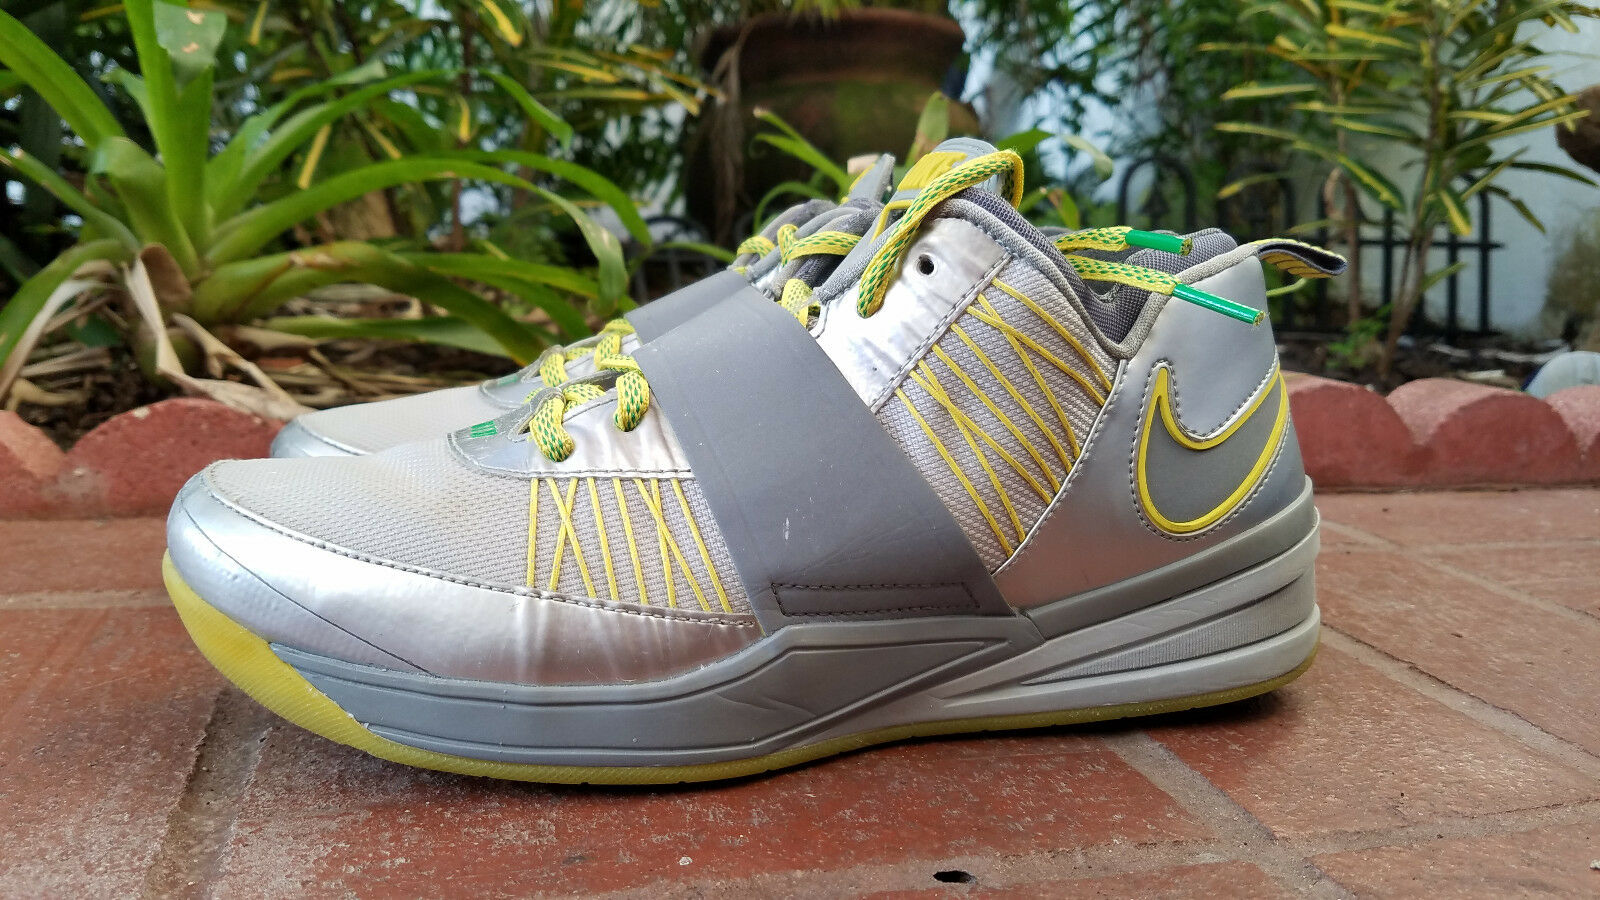 Mens Nike Air zoom Darrell Revis OREGON PE promo sample win the day ducks OU Cheap women's shoes women's shoes